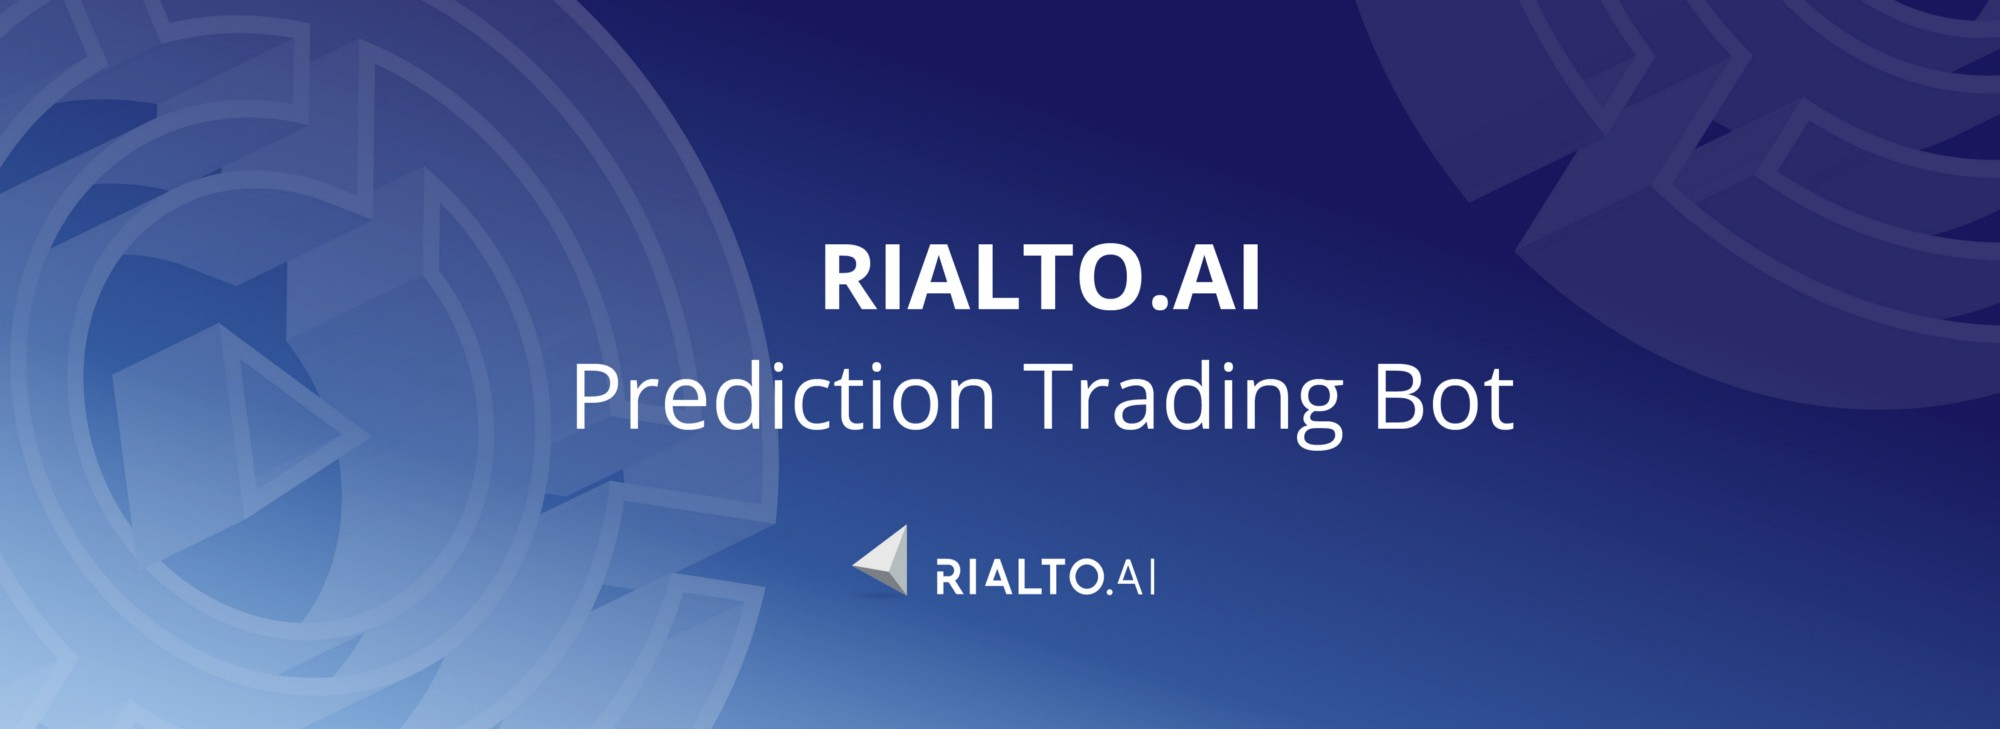 ai for trading cryptocurrency